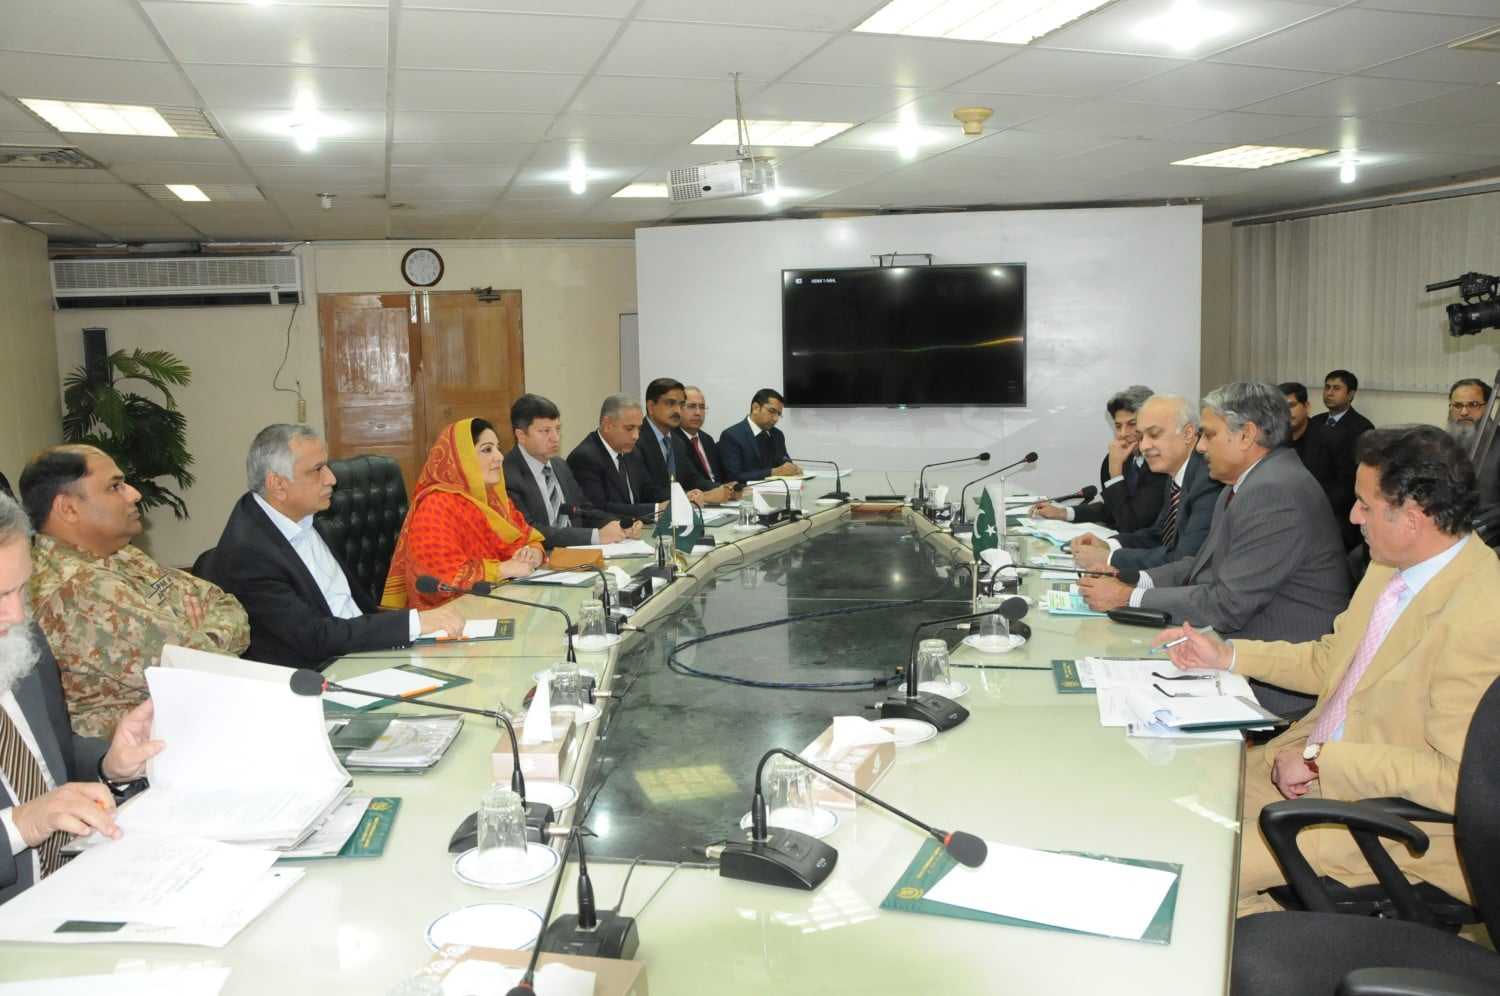 GB and AJK will get 3G/ 4G facility within this calendar year